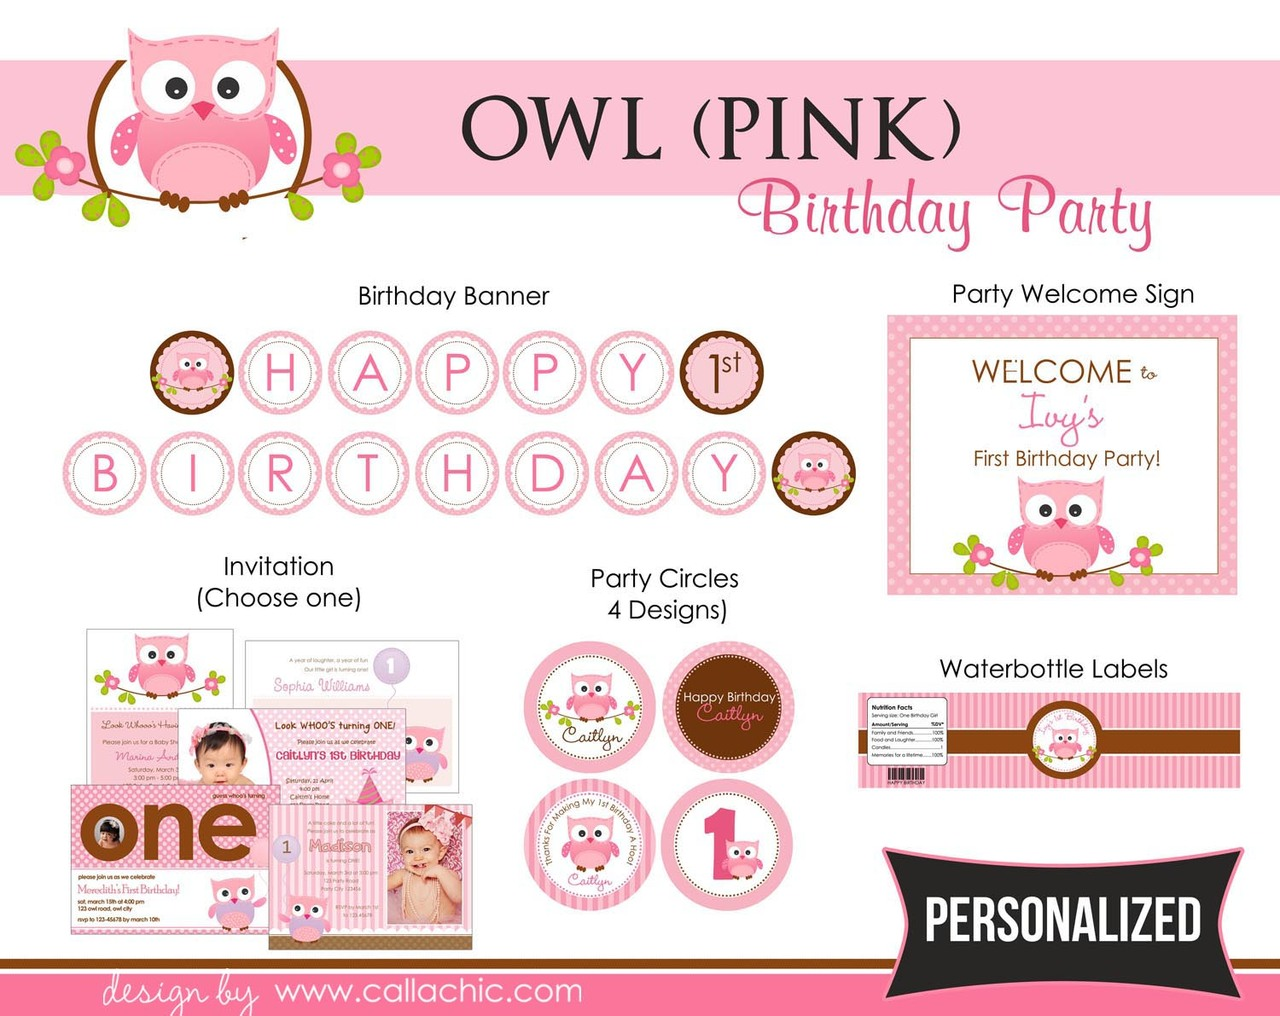 What a Hoot Purple Owl Birthday Banner Party Decoration Backdrop